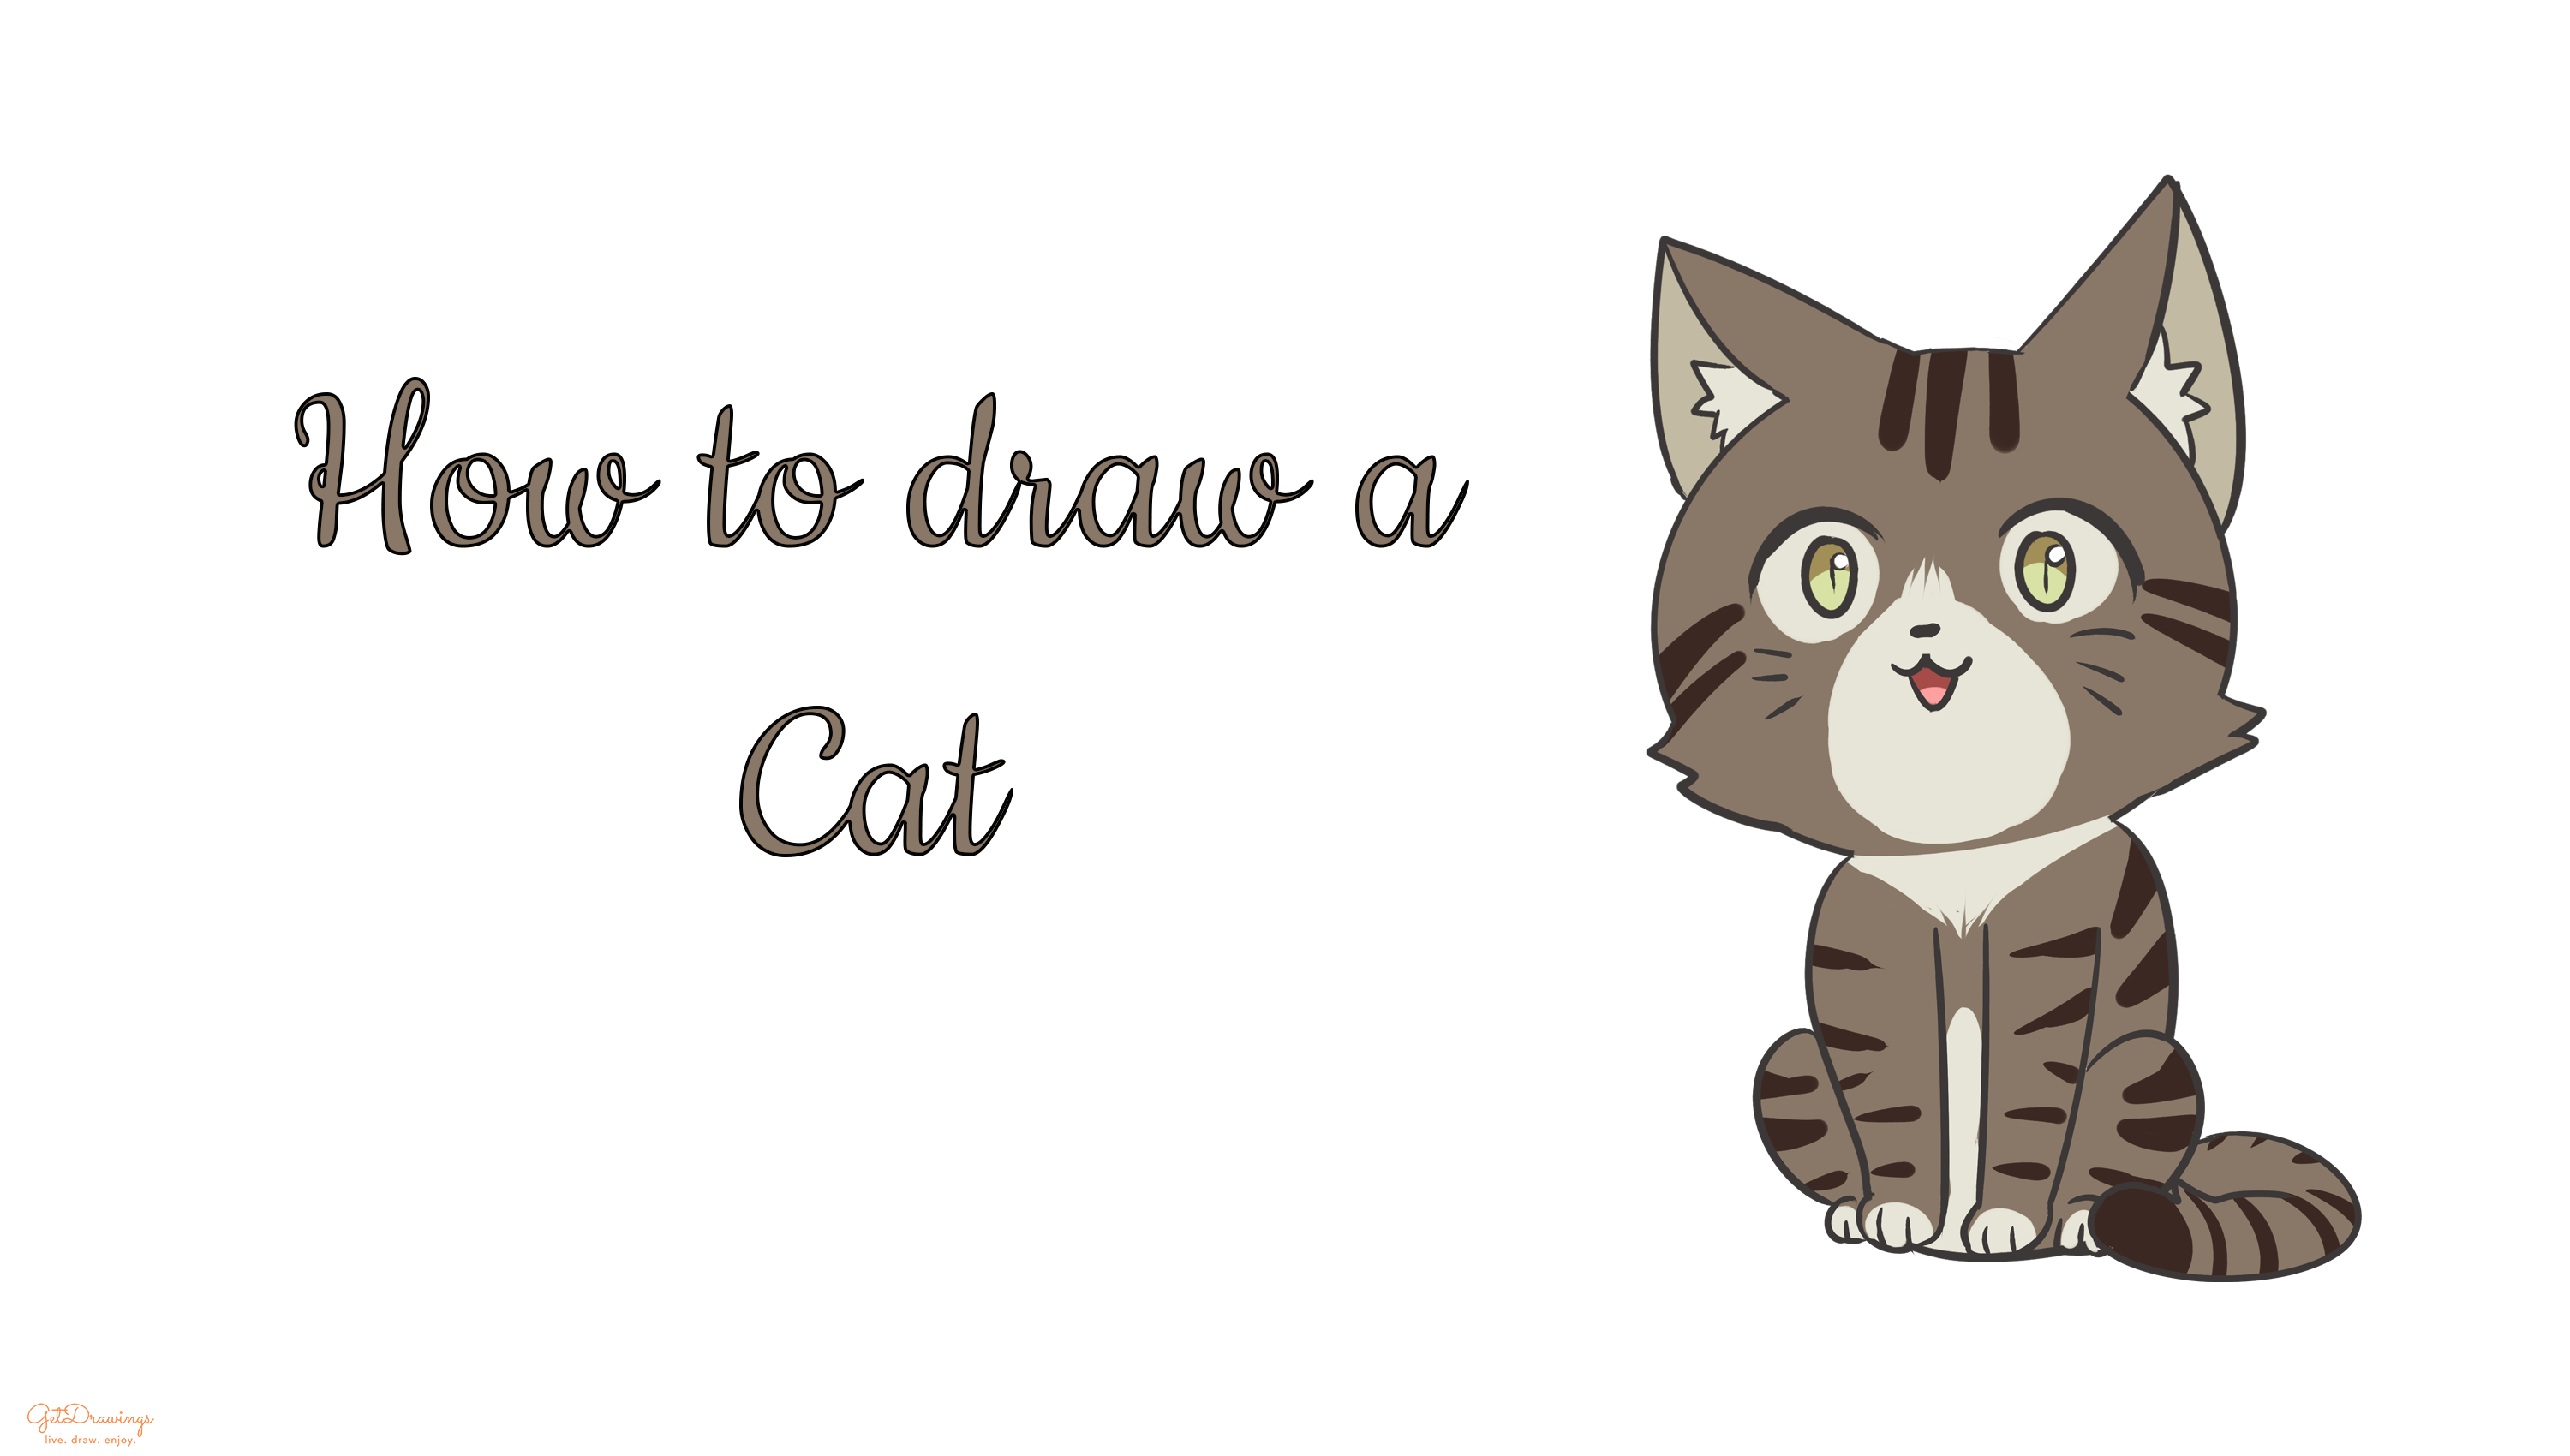 How to draw a cute cartoon Cat?